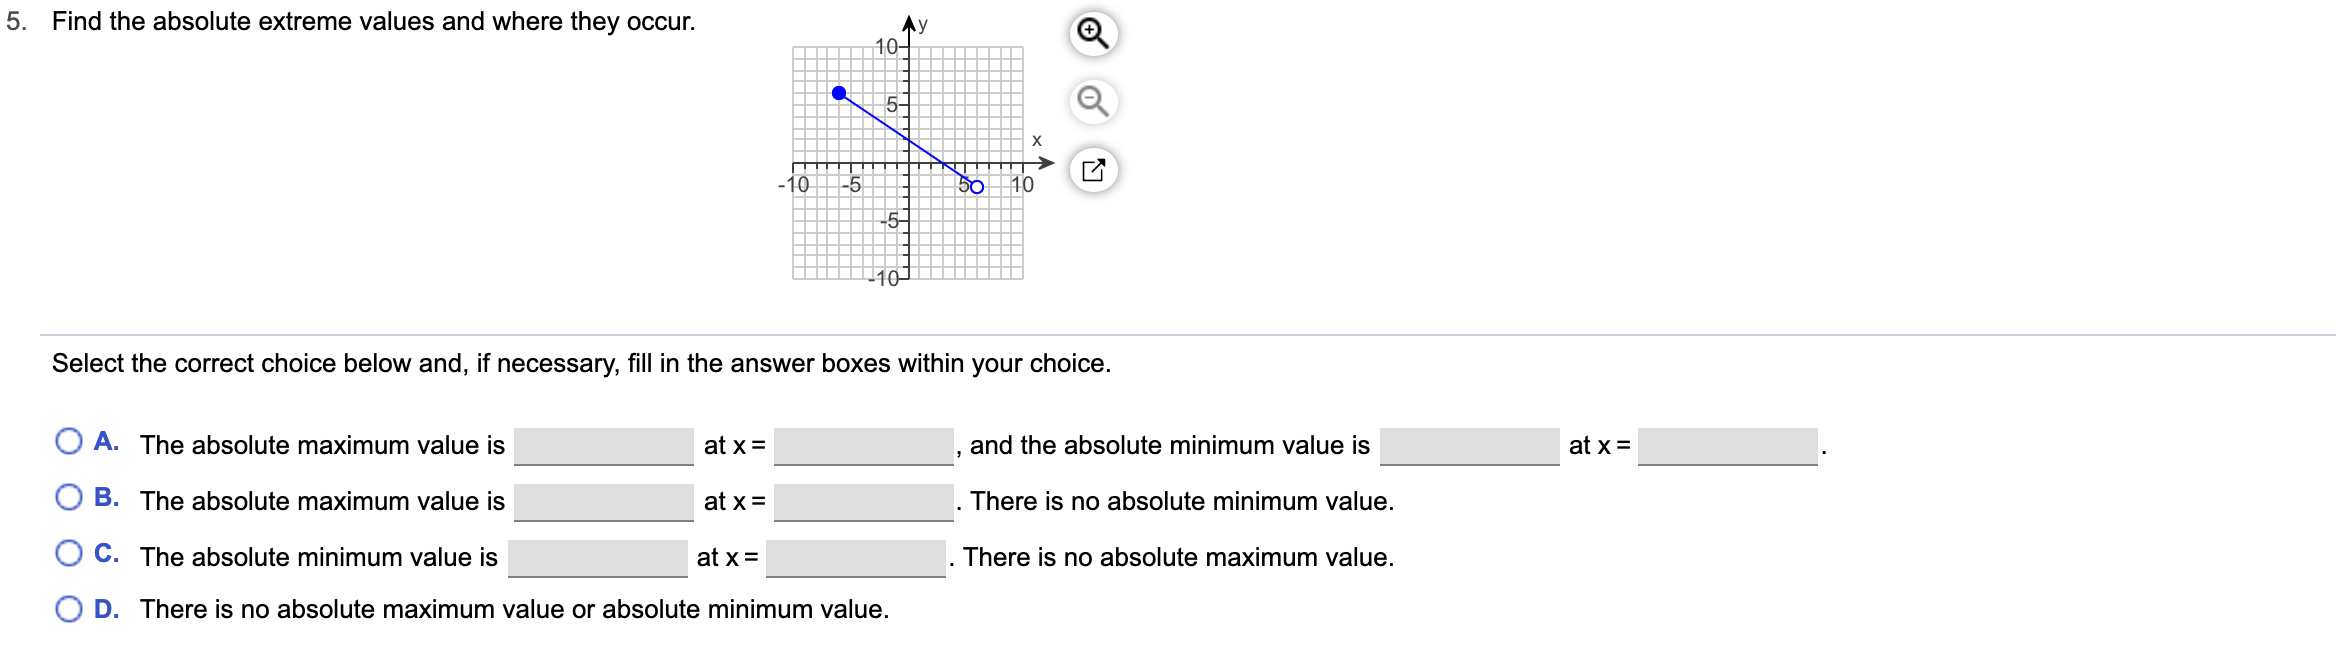 5. Find the absolute extreme values and where they occur. Ay 10- X 10 -5 50 10 5- Select the correct choice below and, if necessary, fill in the answer boxes within your choice. A. The absolute maximum value is and the absolute minimum value is at x= at x = B. The absolute maximum value is There is no absolute minimum value at x C. The absolute minimum value is at x = There is no absolute maximum value. O D. There is no absolute maximum value or absolute minimum value.